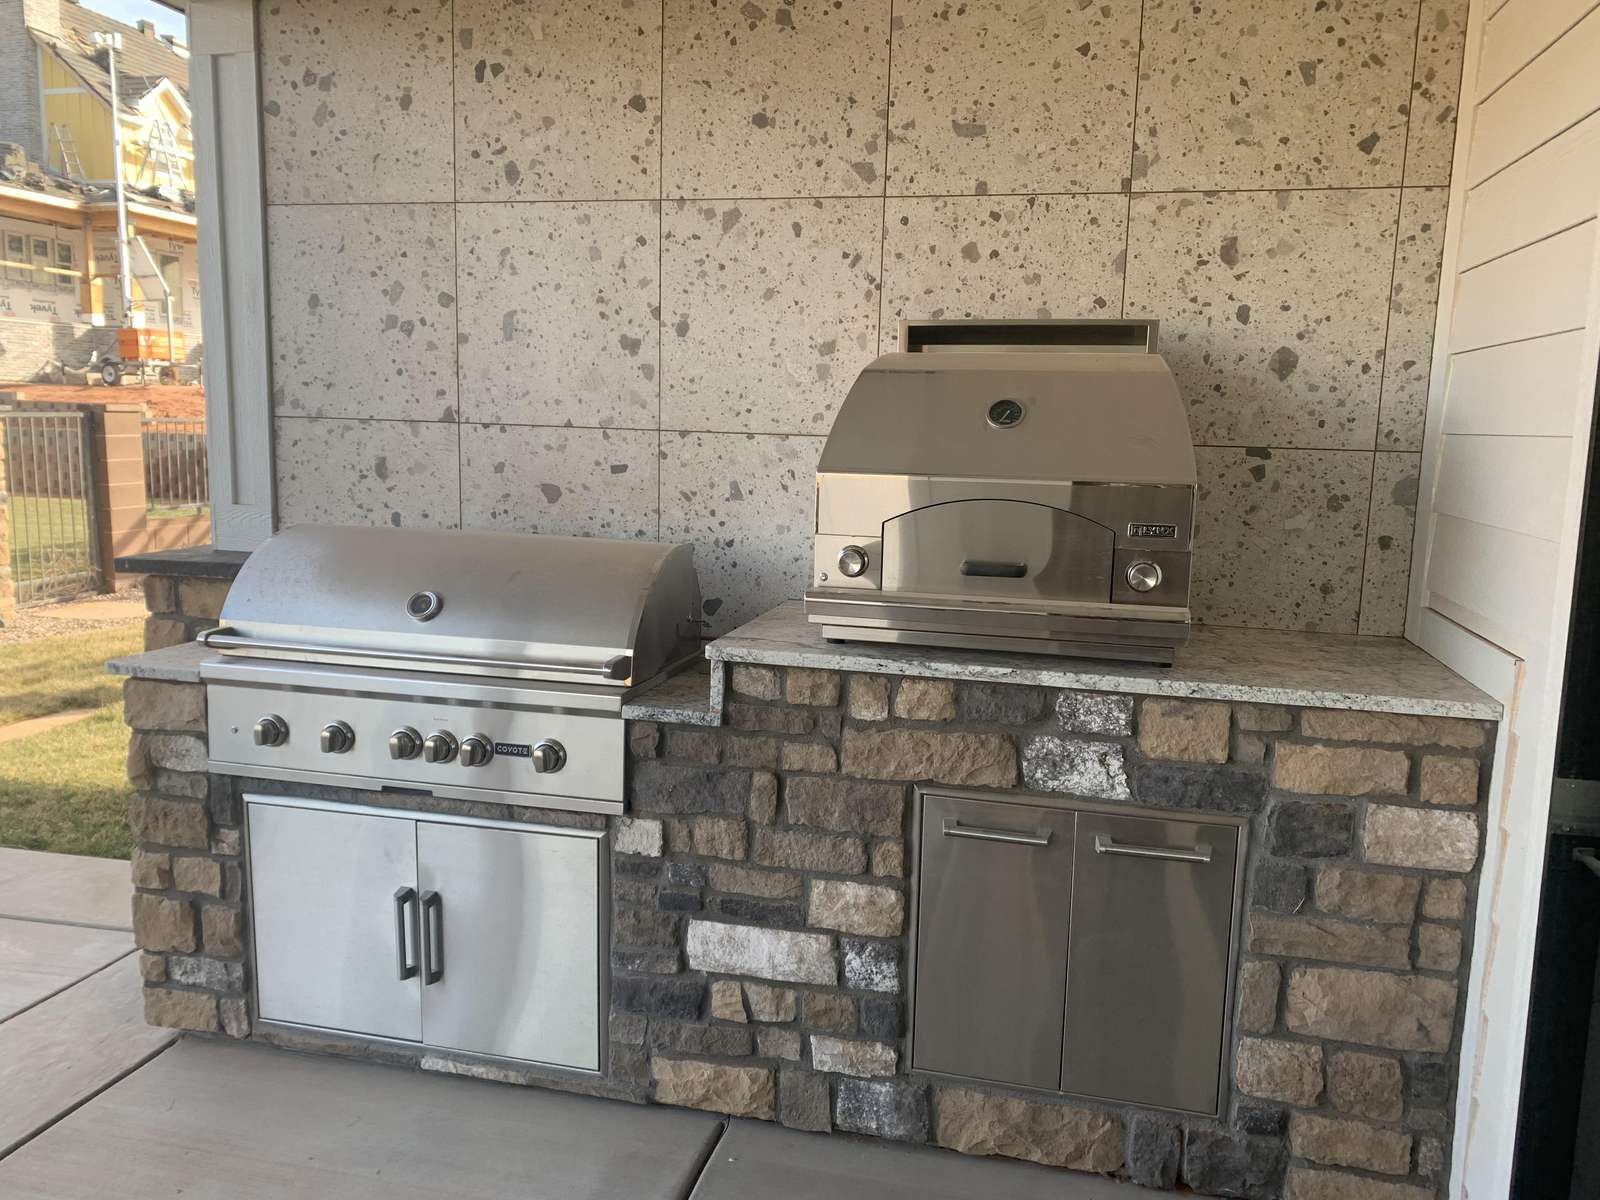 outdoor kitchen includes a pergola, outdoor seating, gas grill, and pizza oven